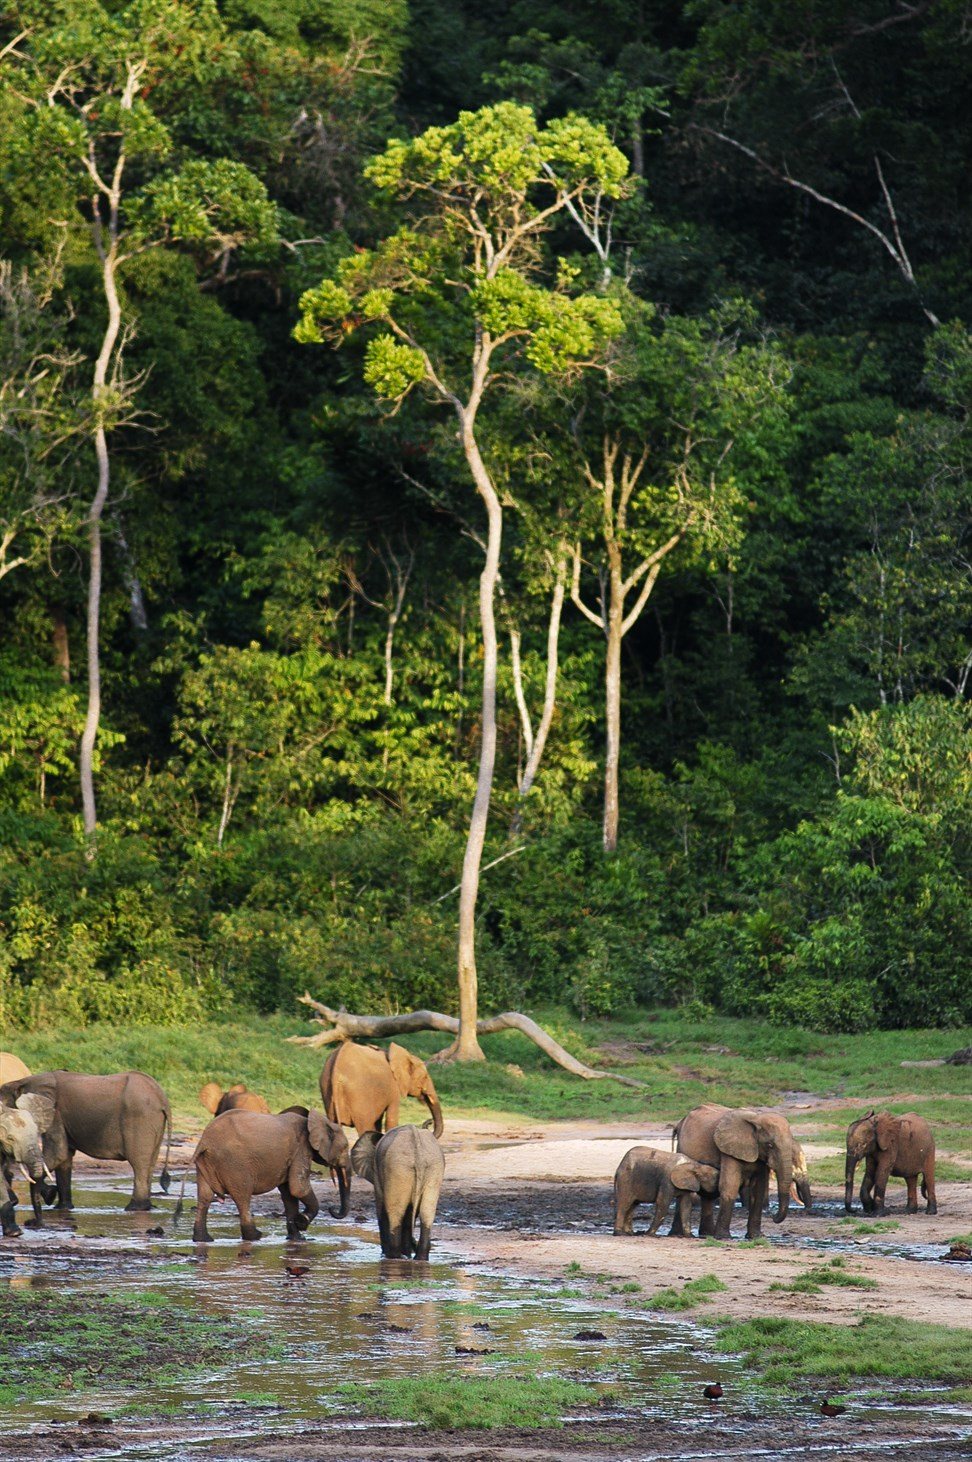 forest-elephants-loxodonta-cyclotis-in-the-dzanga-sangha-reserve-central-african-republic_0eee-1462x2200px